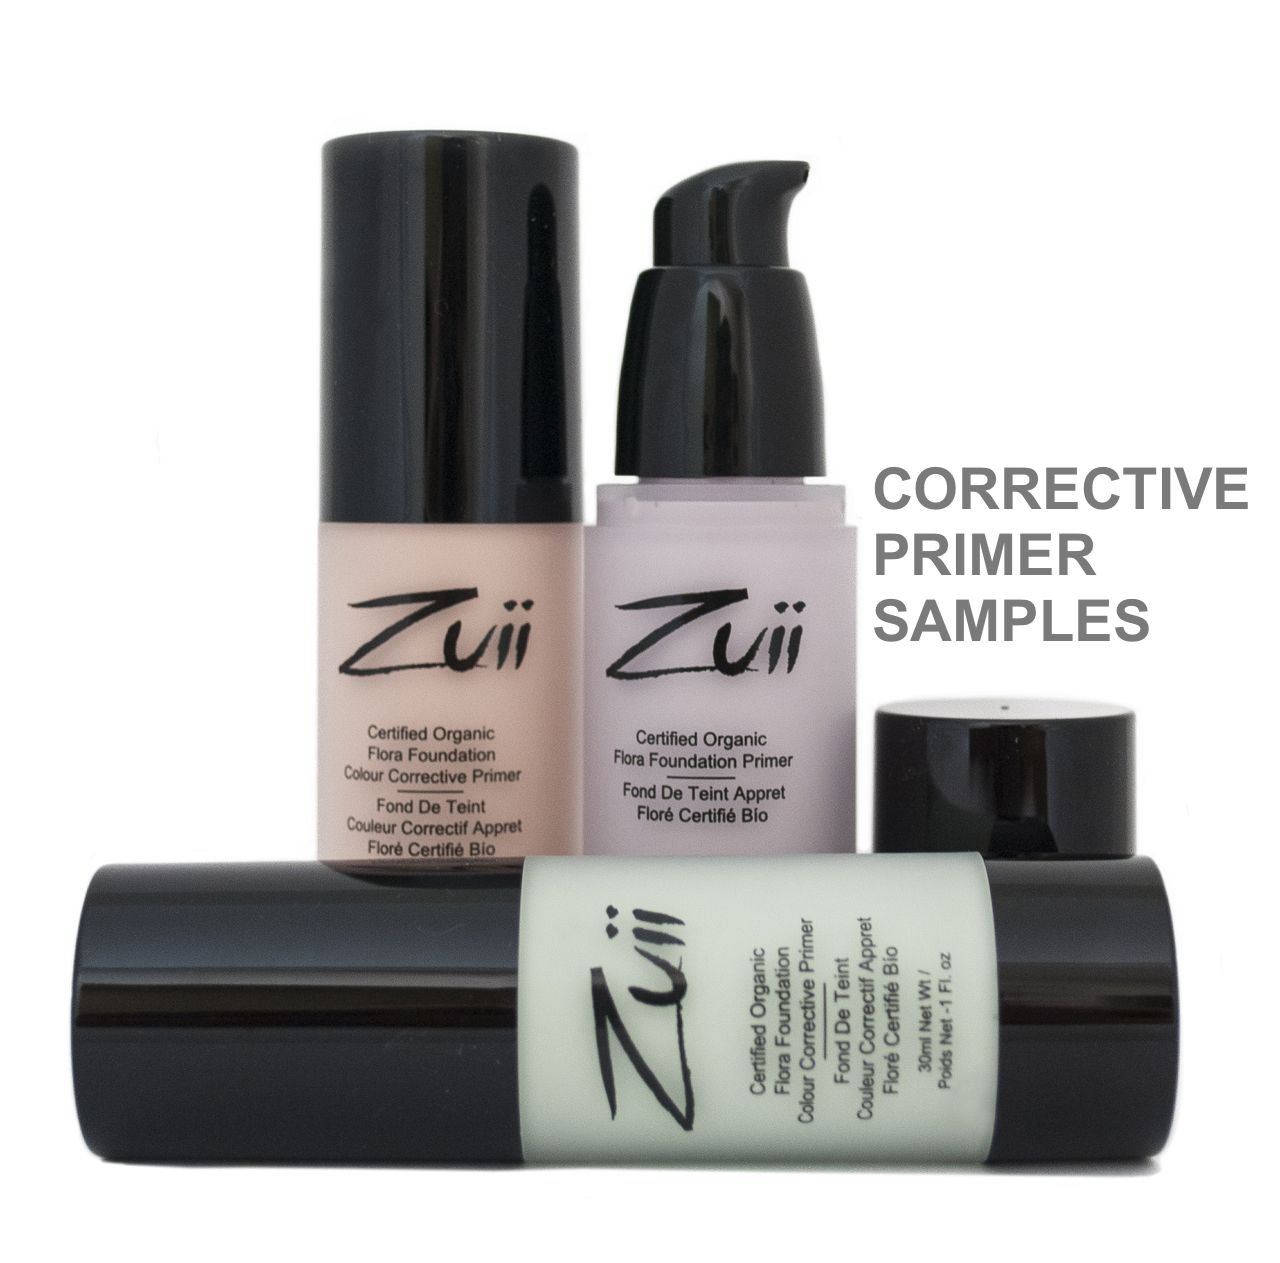 Zuii Organic Certified Organic Flora Colour Corrective